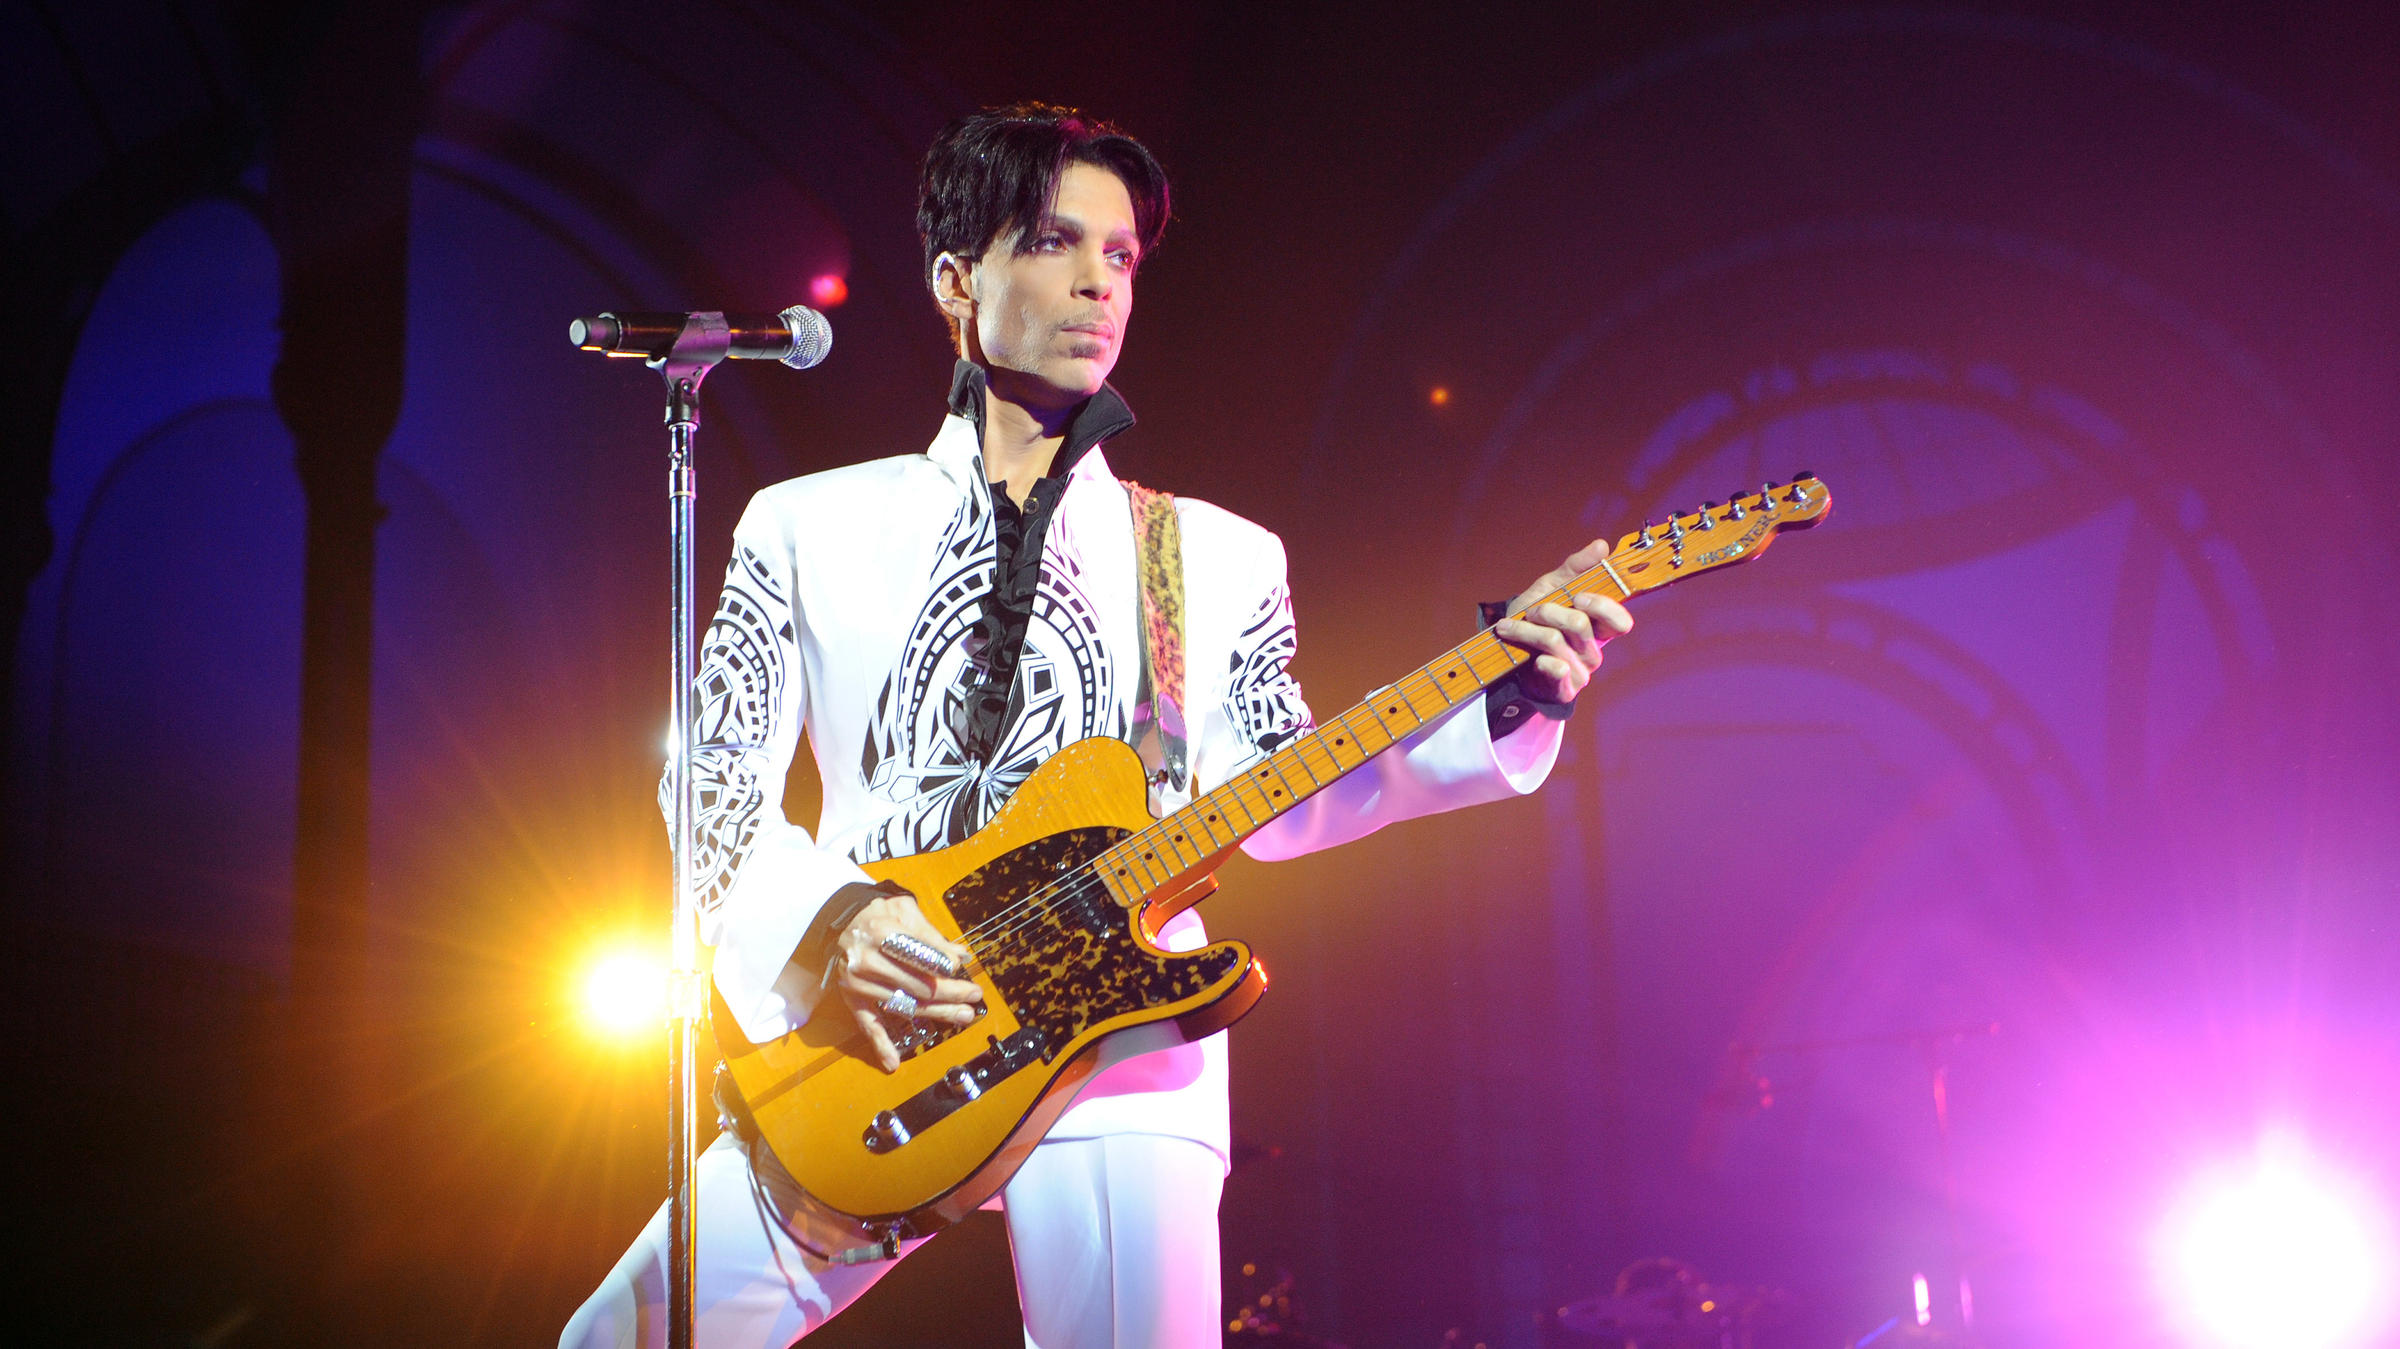 So… what happens to all that unreleased Prince music in the vault?